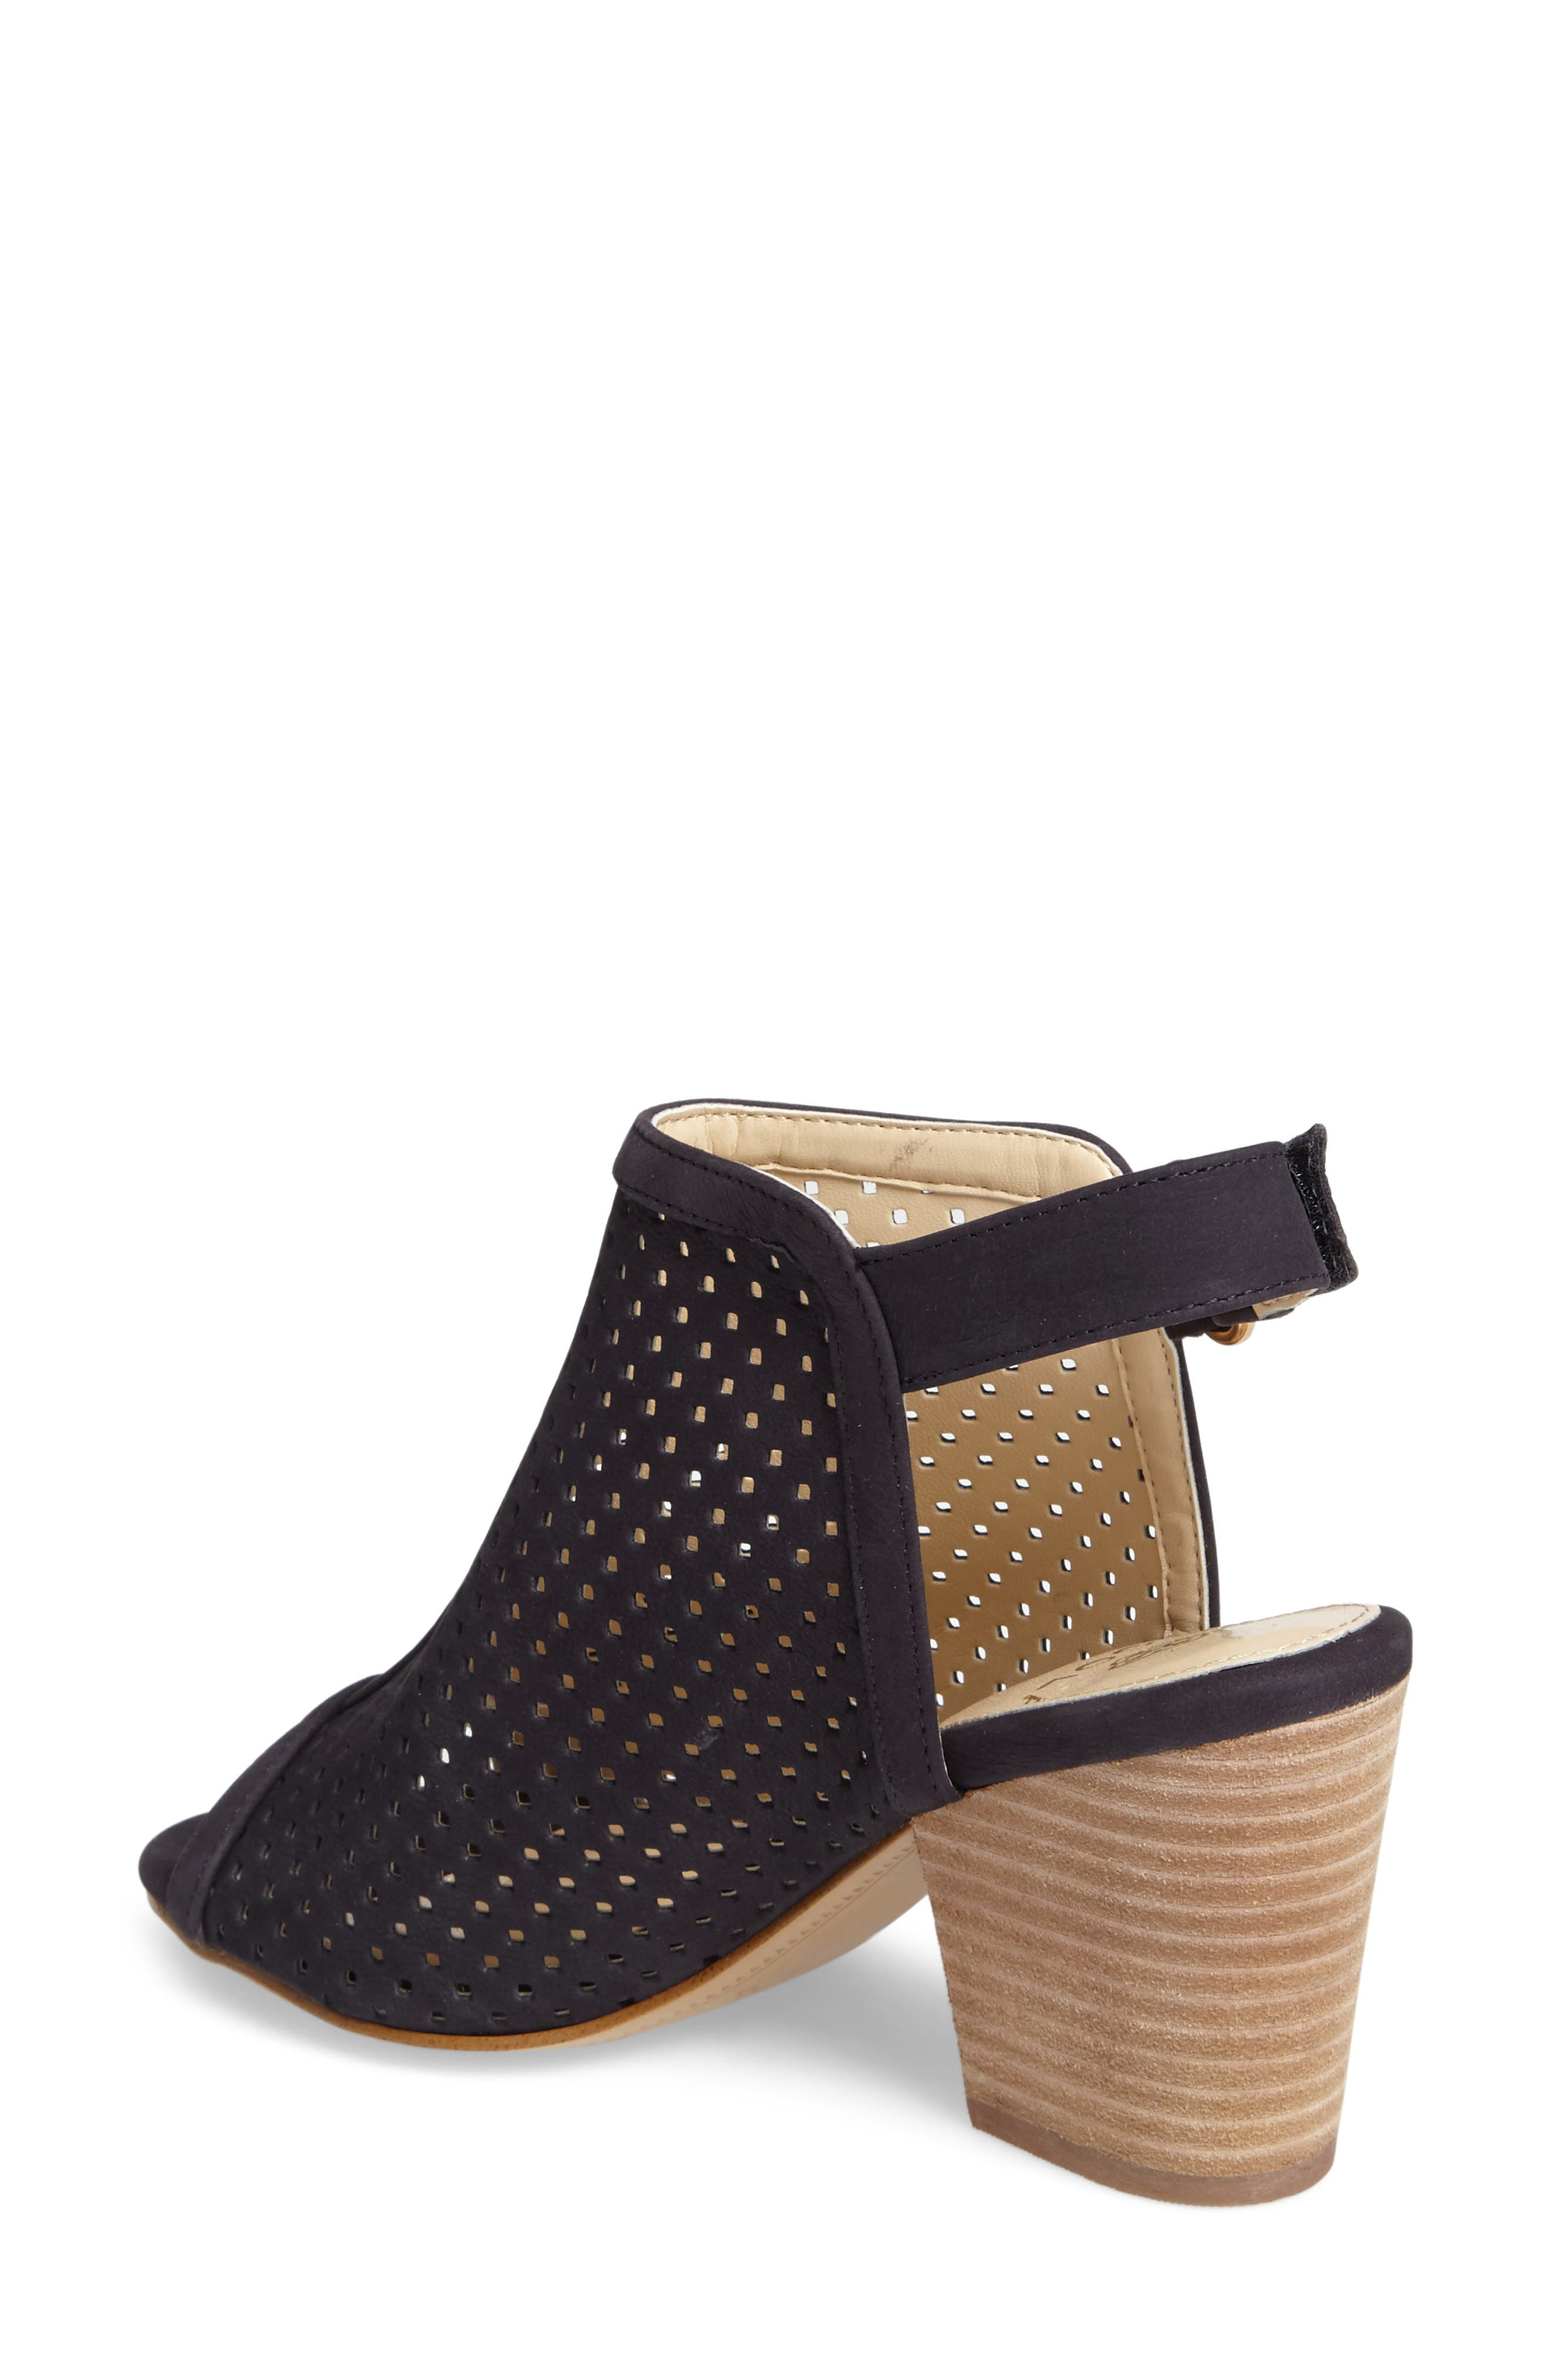 Alternate Image 2  - Isolá 'Lora' Perforated Open-Toe Bootie Sandal (Women)